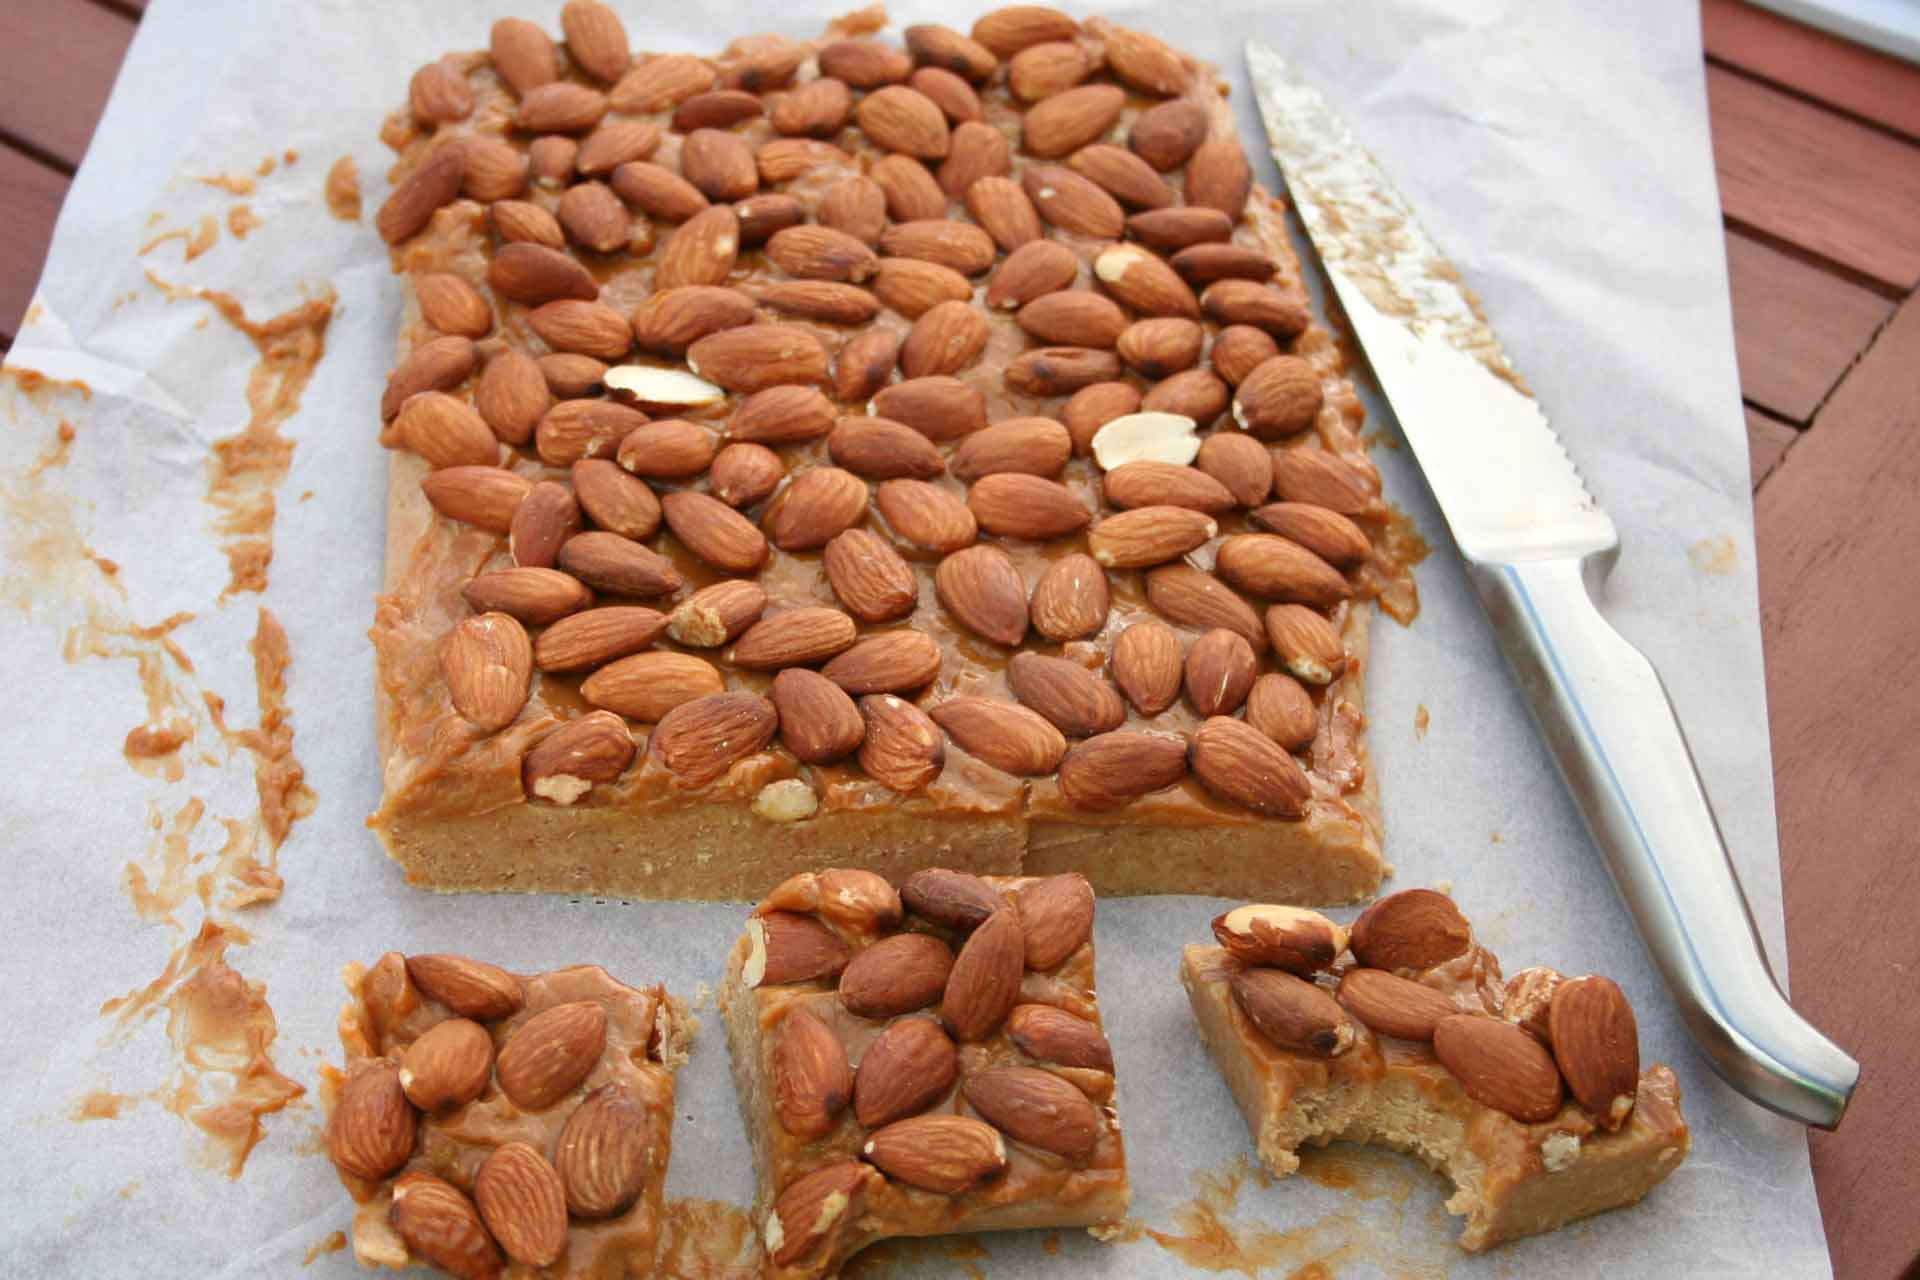 Almond-and-caramel-slice